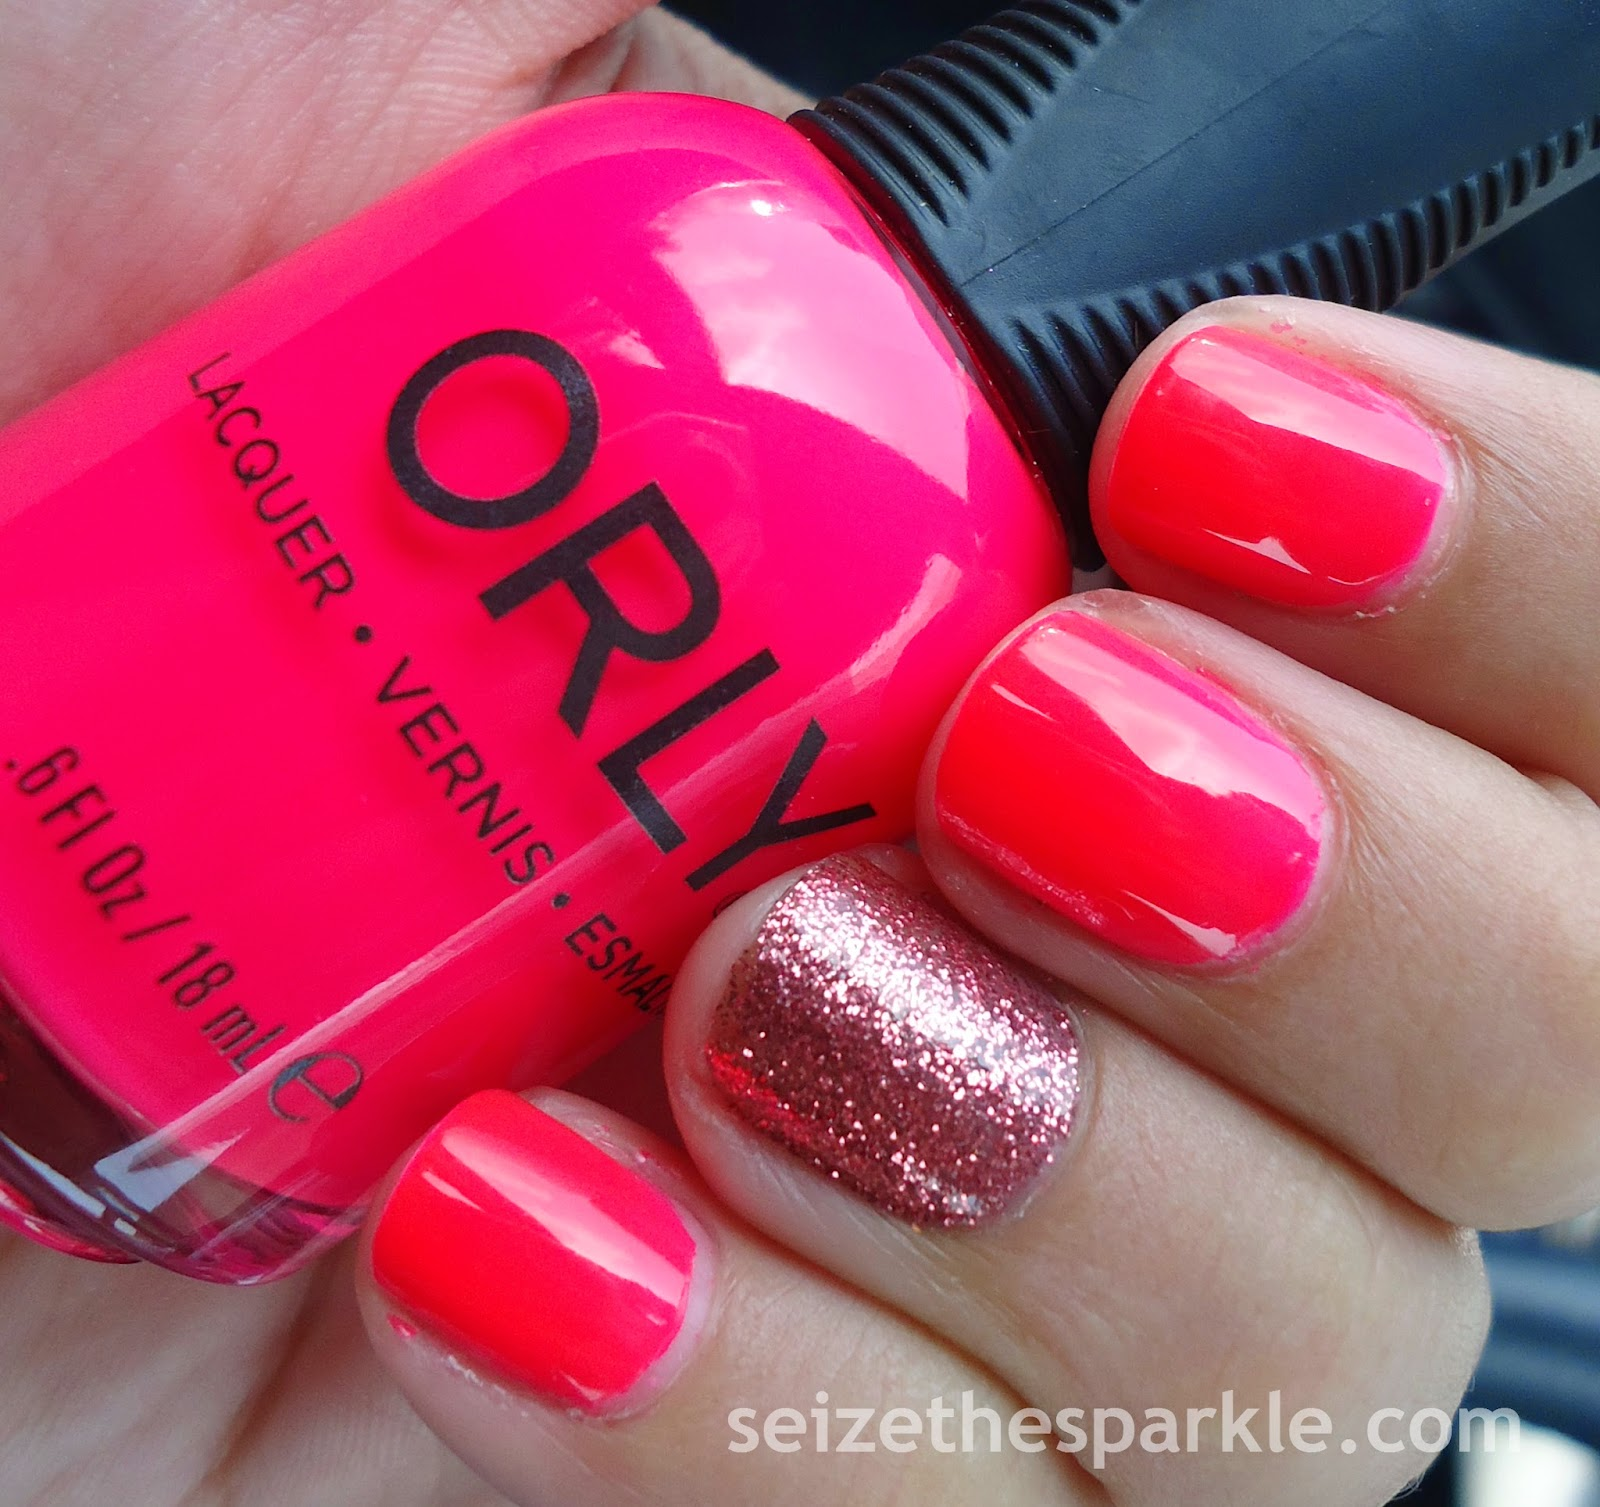 Butter London Rosie Lee & Orly Tropical Punch